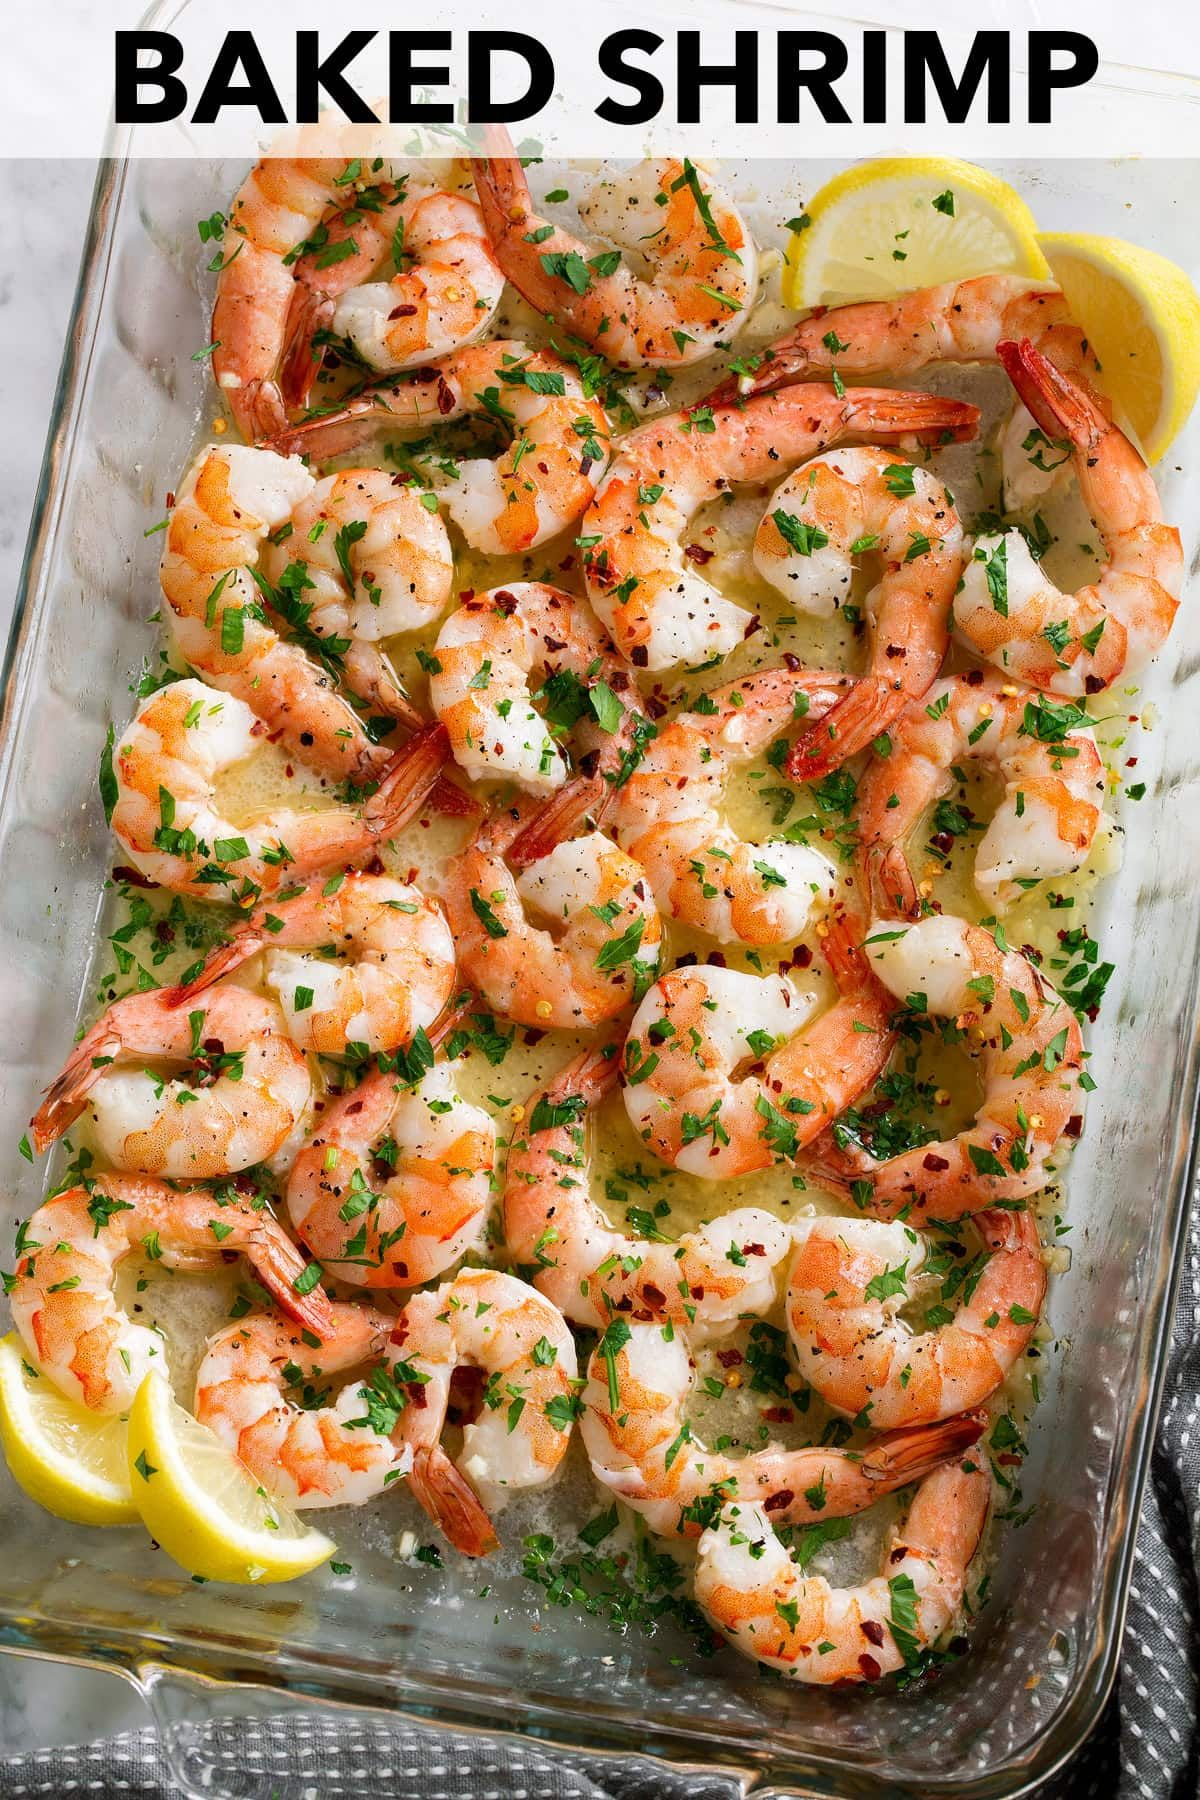 Baked Shrimp (with Garlic Lemon Butter Sauce) - Cooking Classy #shrimprecipes